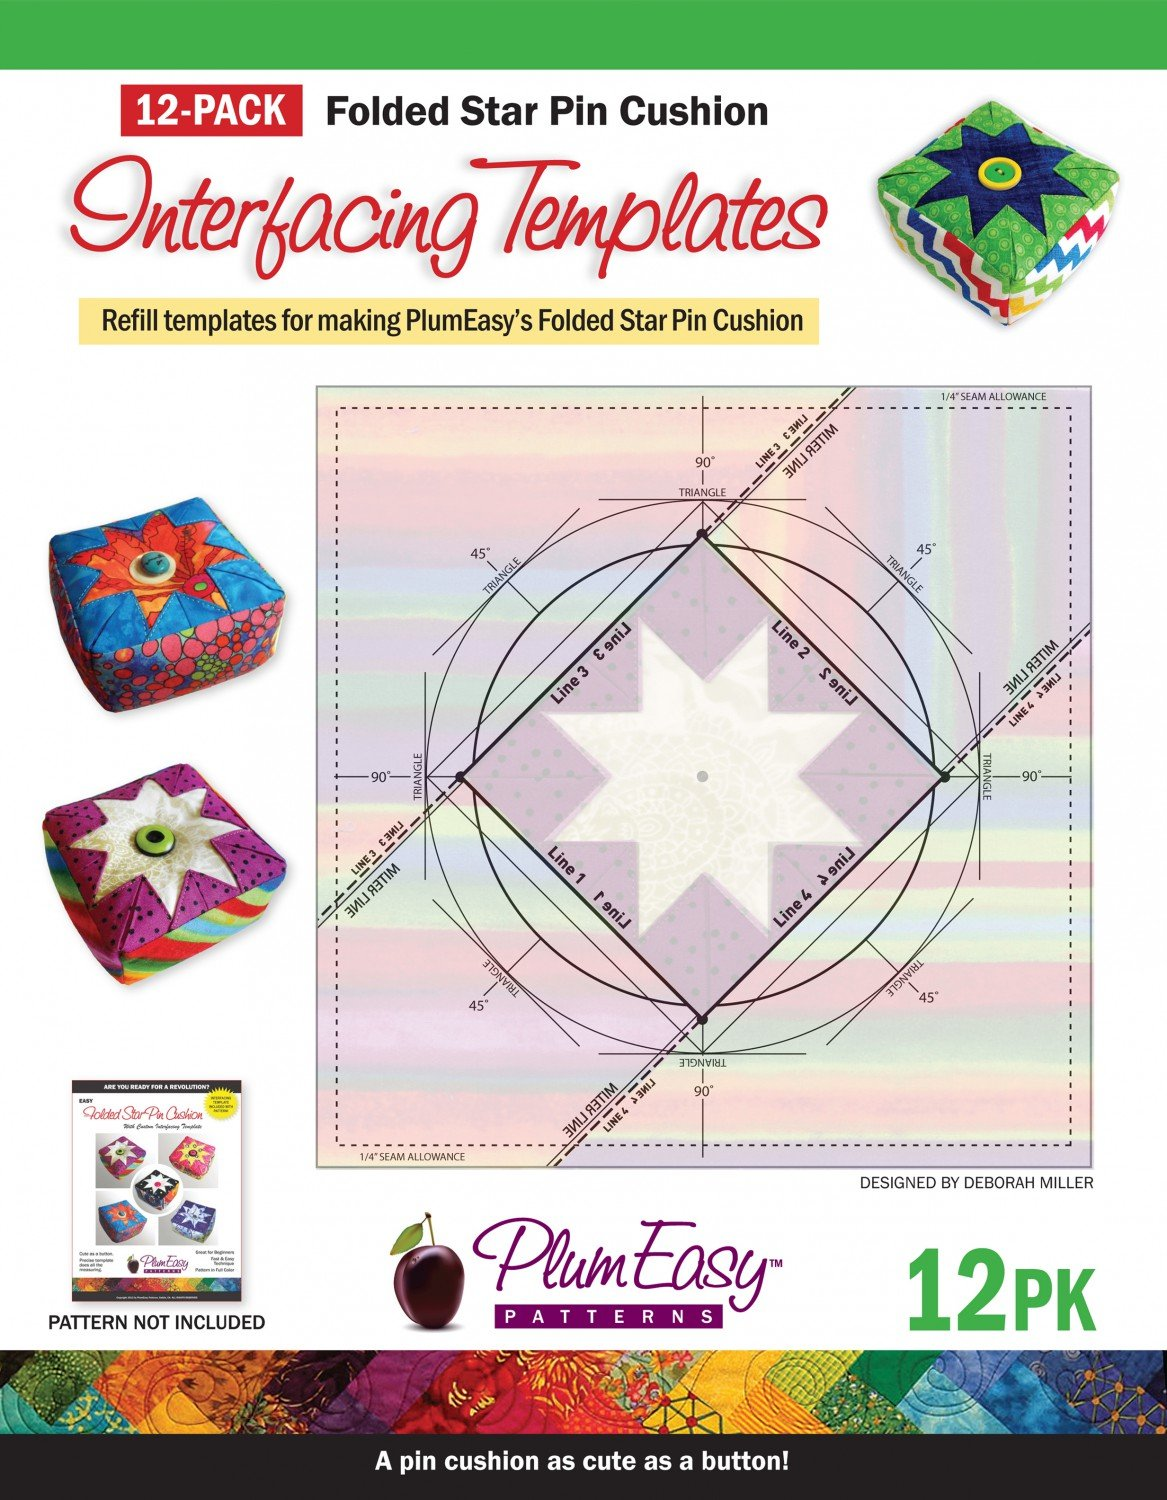 Folded Star Pin Cushion Template (12-pack)